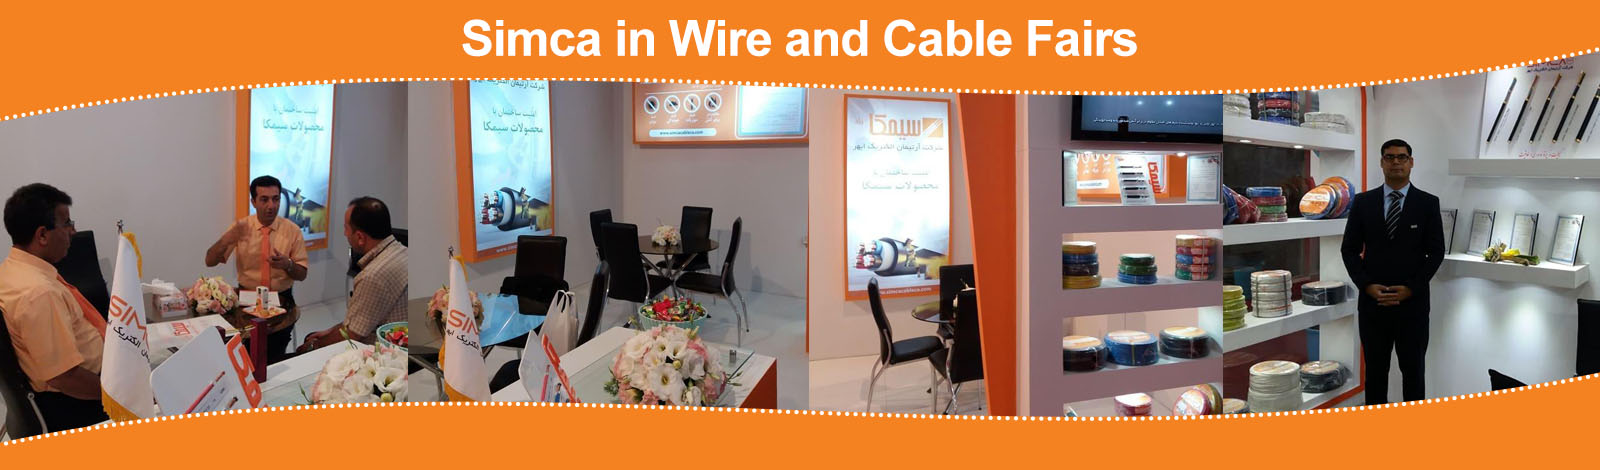 Simca Cable Co in Fairs